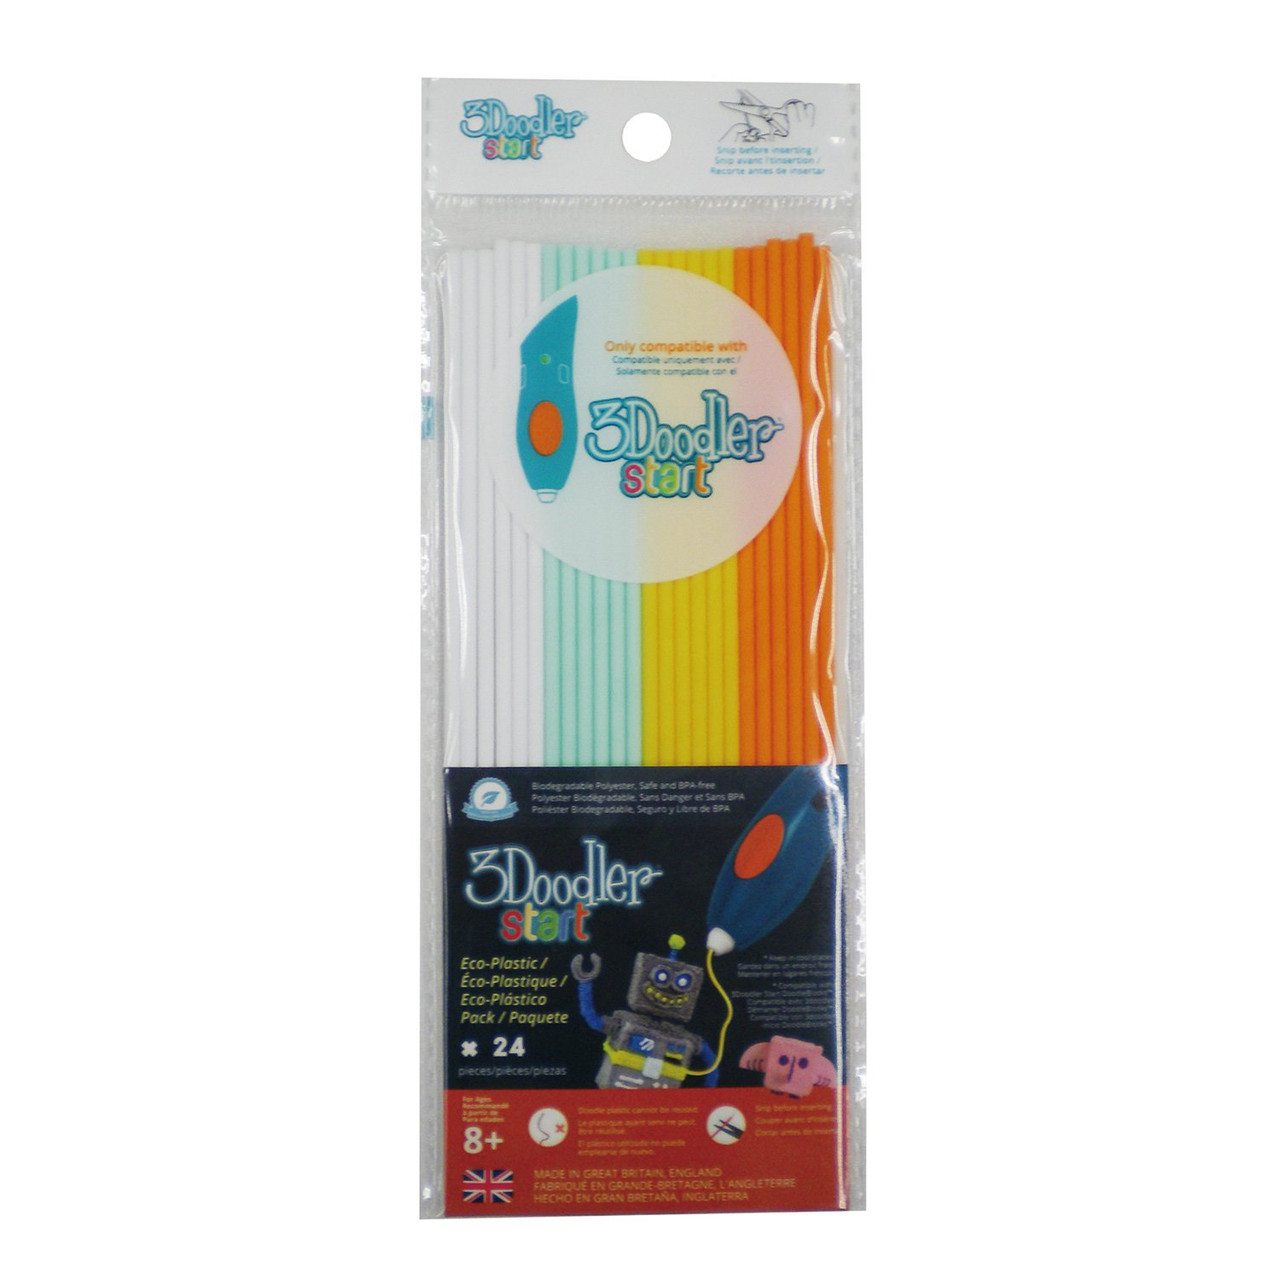 3Doodler 3DS-ECO-MIX1-24 Start Eco-Plastic Filament Tube Refill 24 Pack Fire&Ice